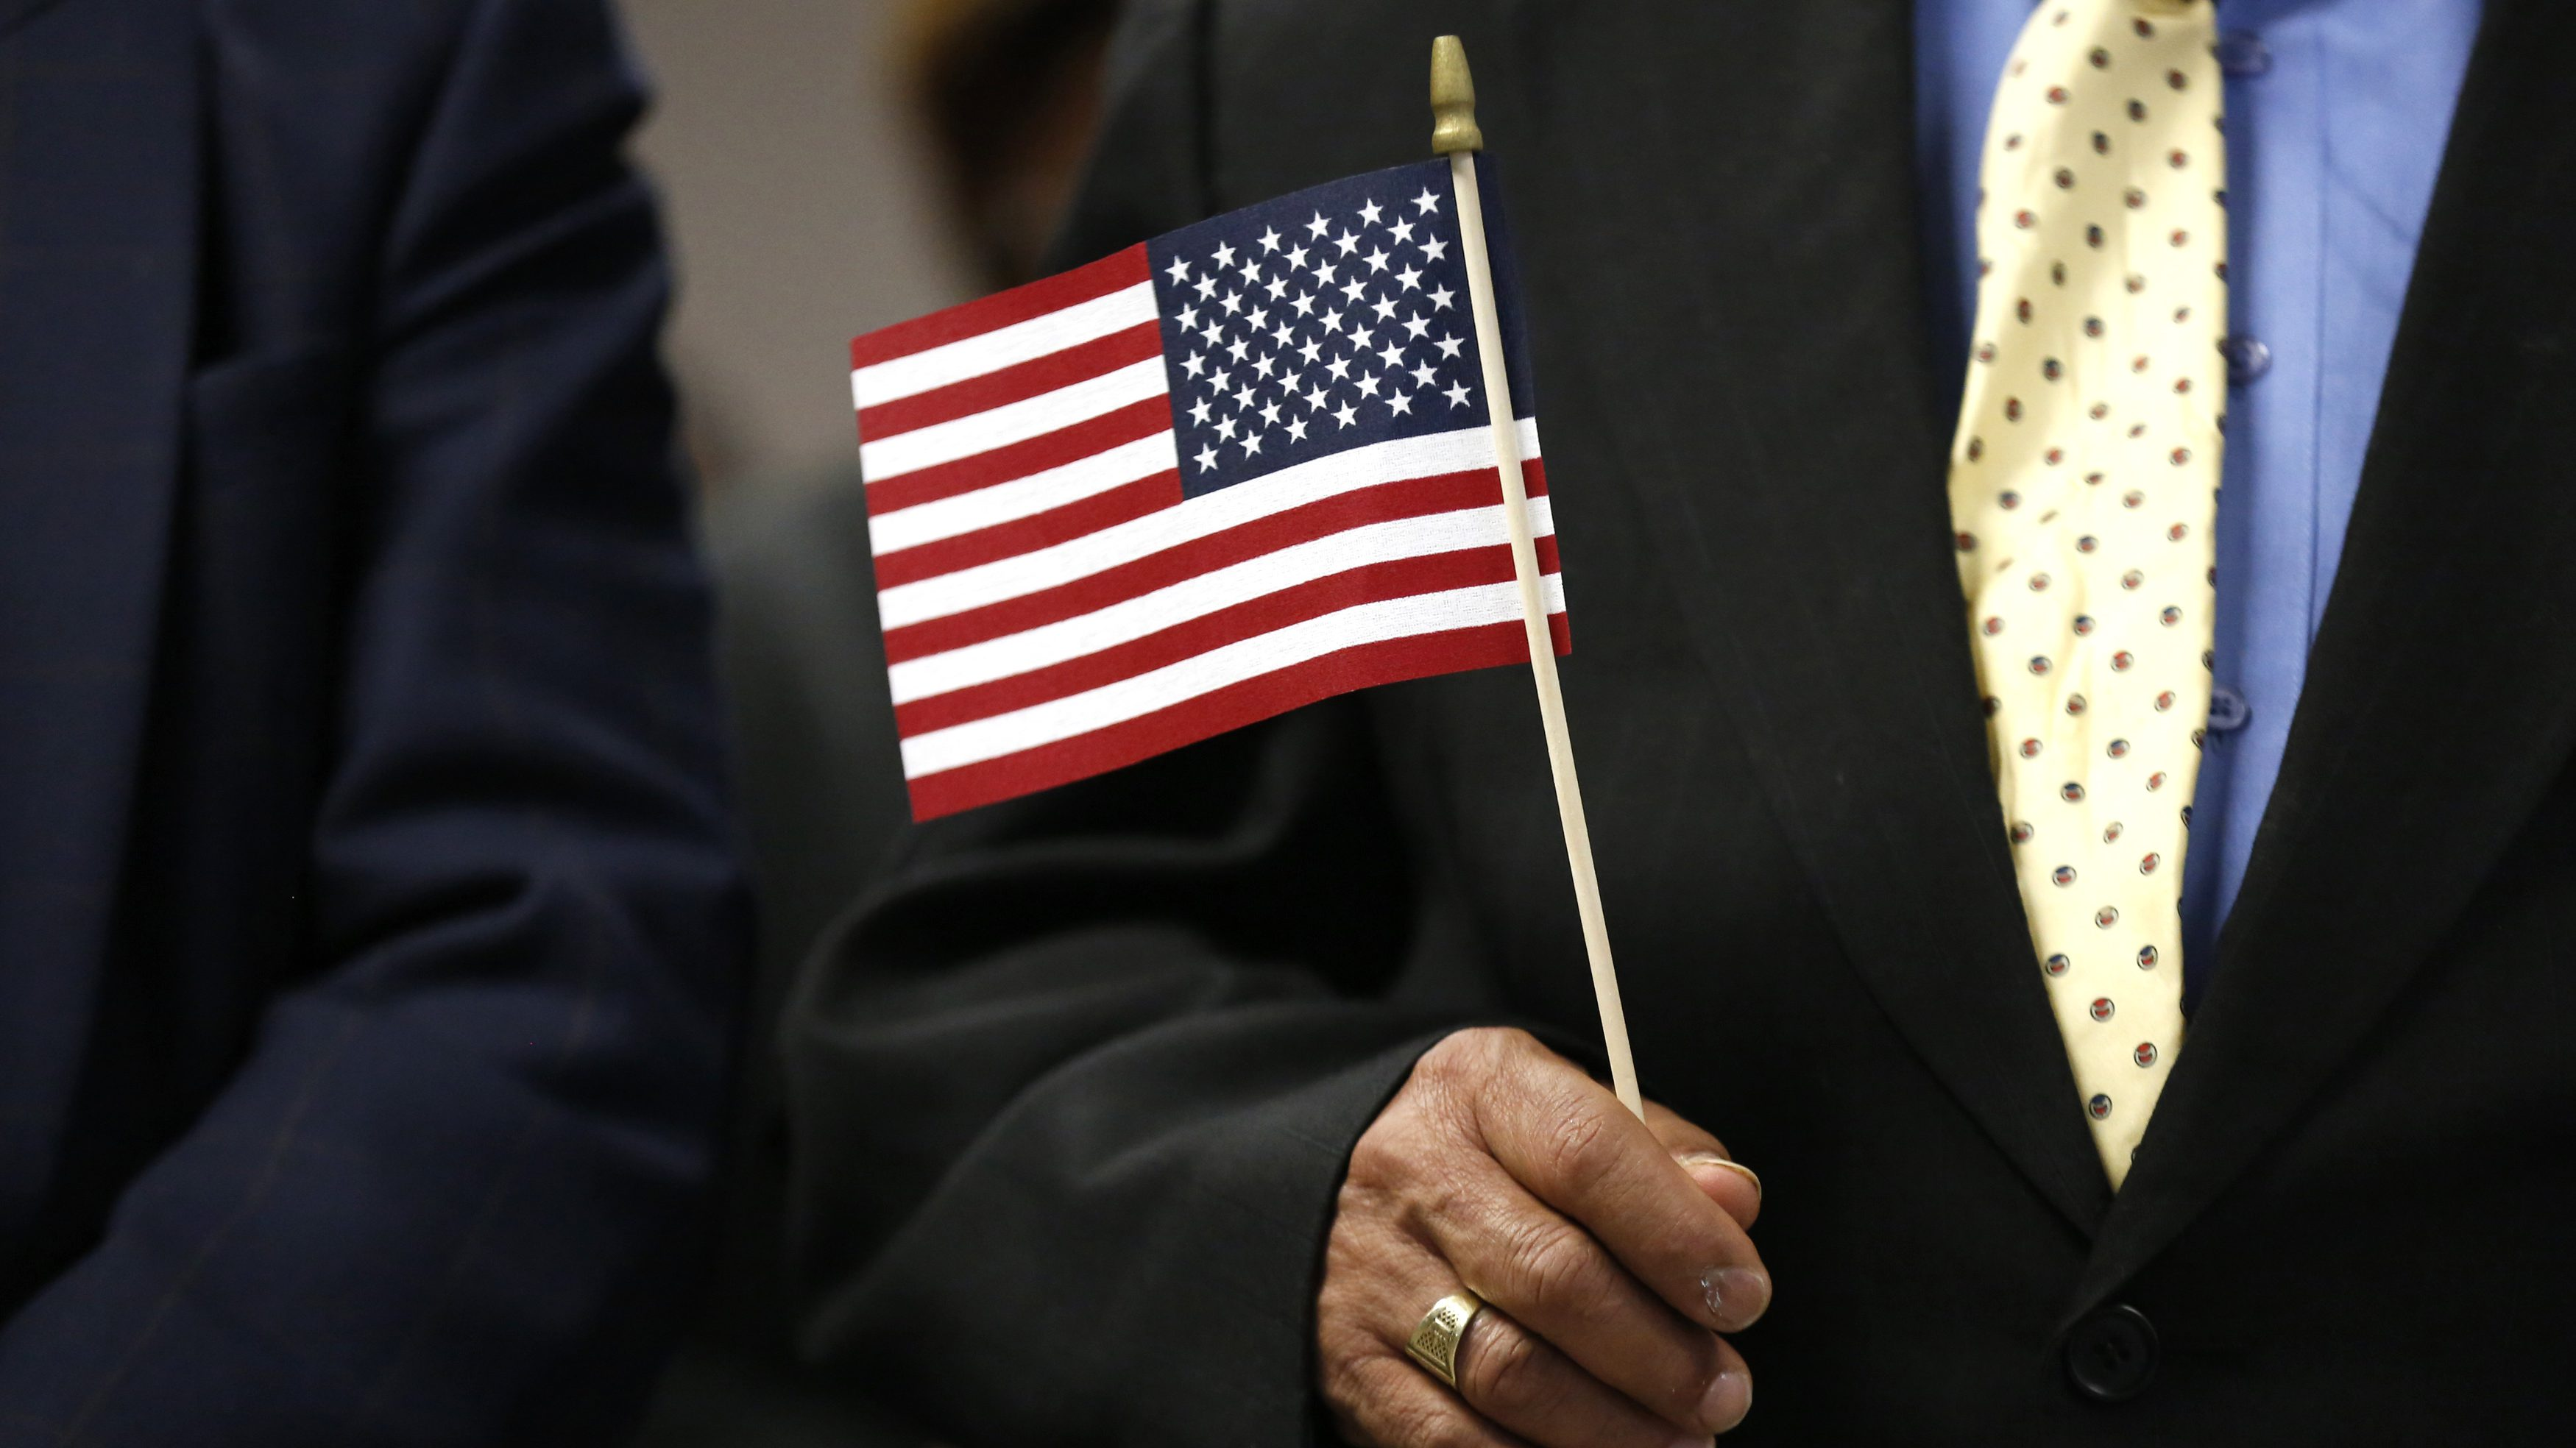 """An immigrant holds a U.S. flag during a naturalization ceremony to become an American citizen in New York, April 17, 2013. President Barack Obama on Tuesday embraced a sweeping overhaul of the nation's immigration system put forward by a bipartisan group of senators, saying it was """"largely consistent"""" with his own principles for immigration reform. REUTERS/Brendan McDermid (UNITED STATES - Tags: SOCIETY IMMIGRATION POLITICS) - GM1E94I0A4302"""